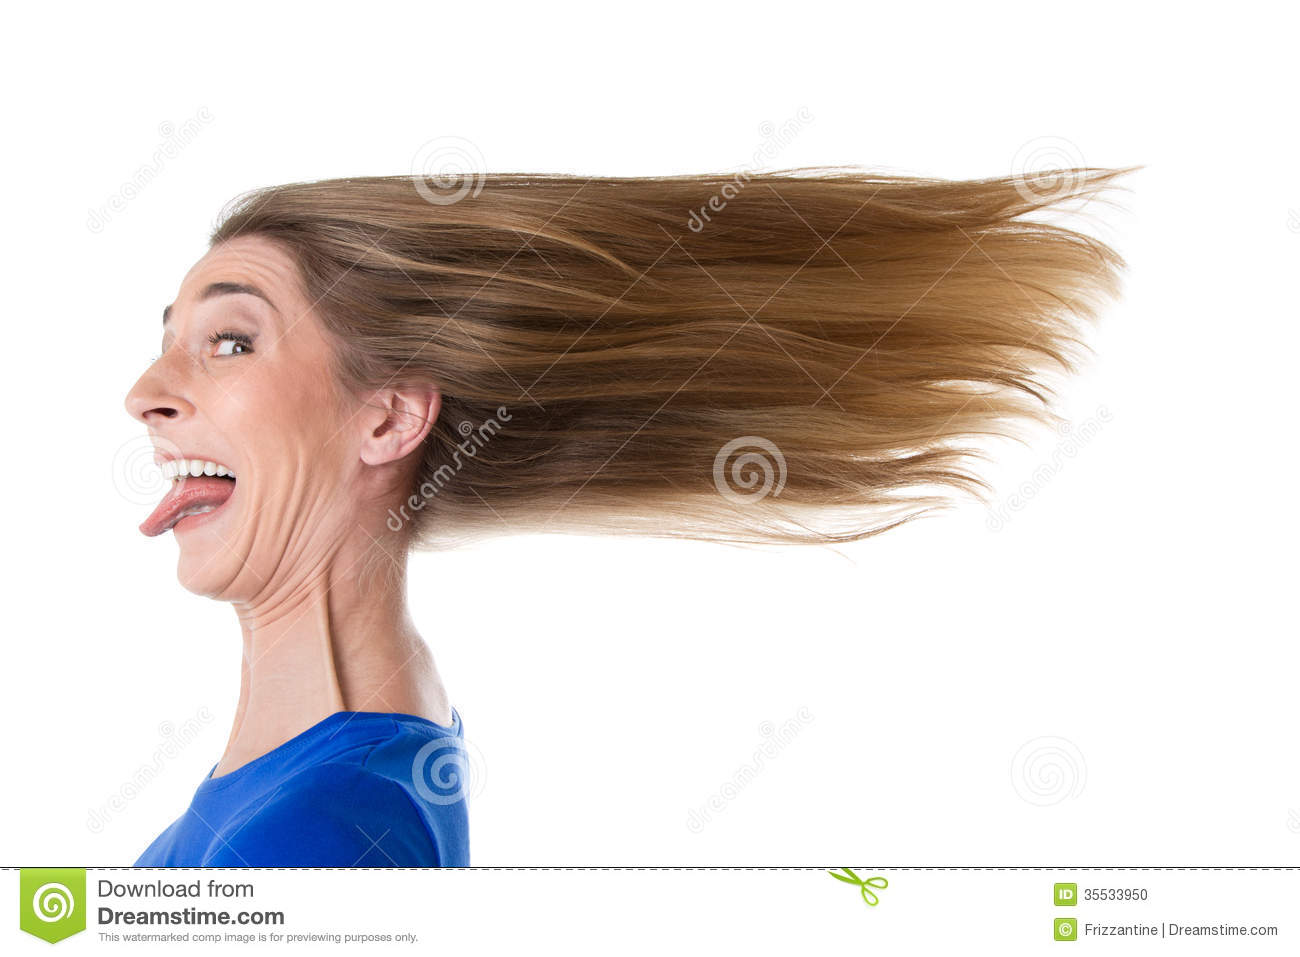 Woman Hair Ruffled By Wind Stock Photo - Image: 35533950